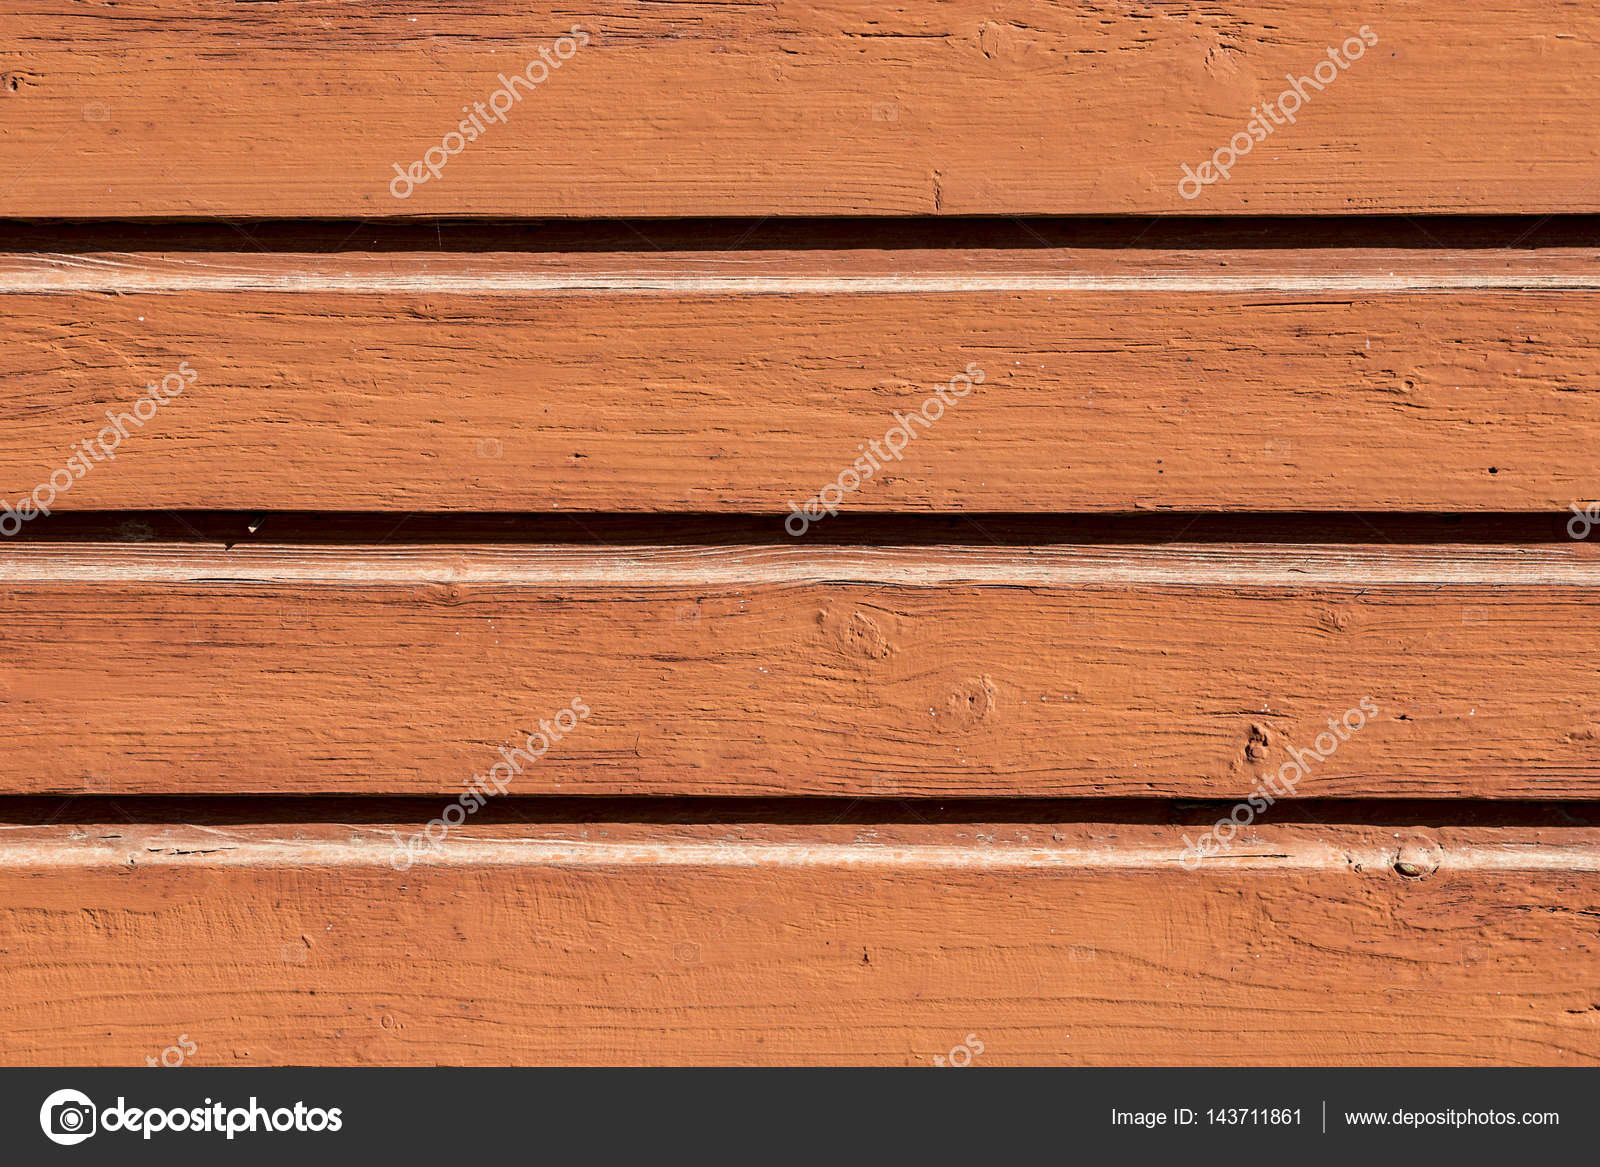 alte rote wand aus holzbohlen — stockfoto © hackman #143711861